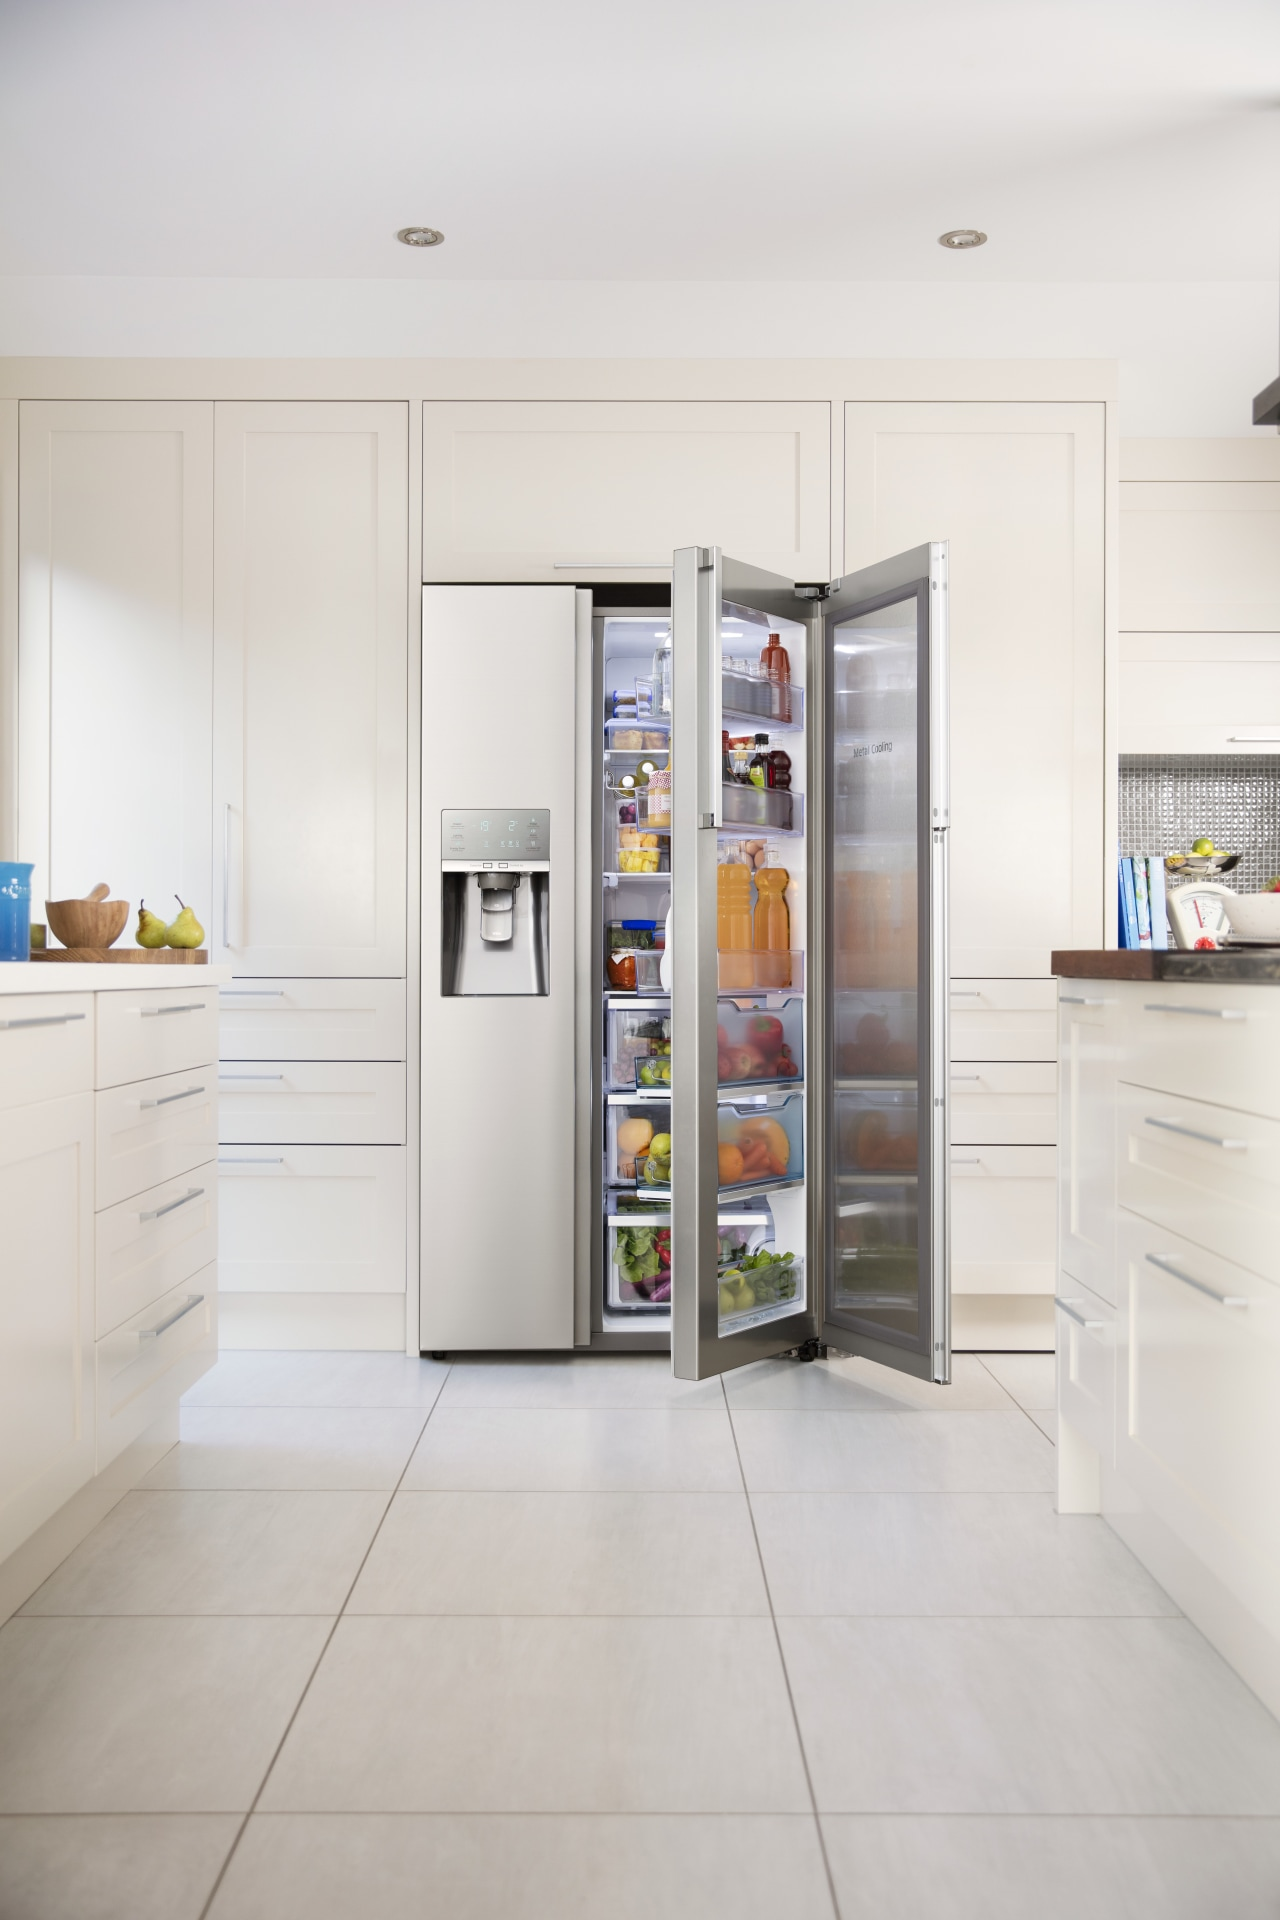 The Samsung Food Showcase side-by-side refrigerator lets you home appliance, interior design, kitchen, kitchen appliance, major appliance, refrigerator, white